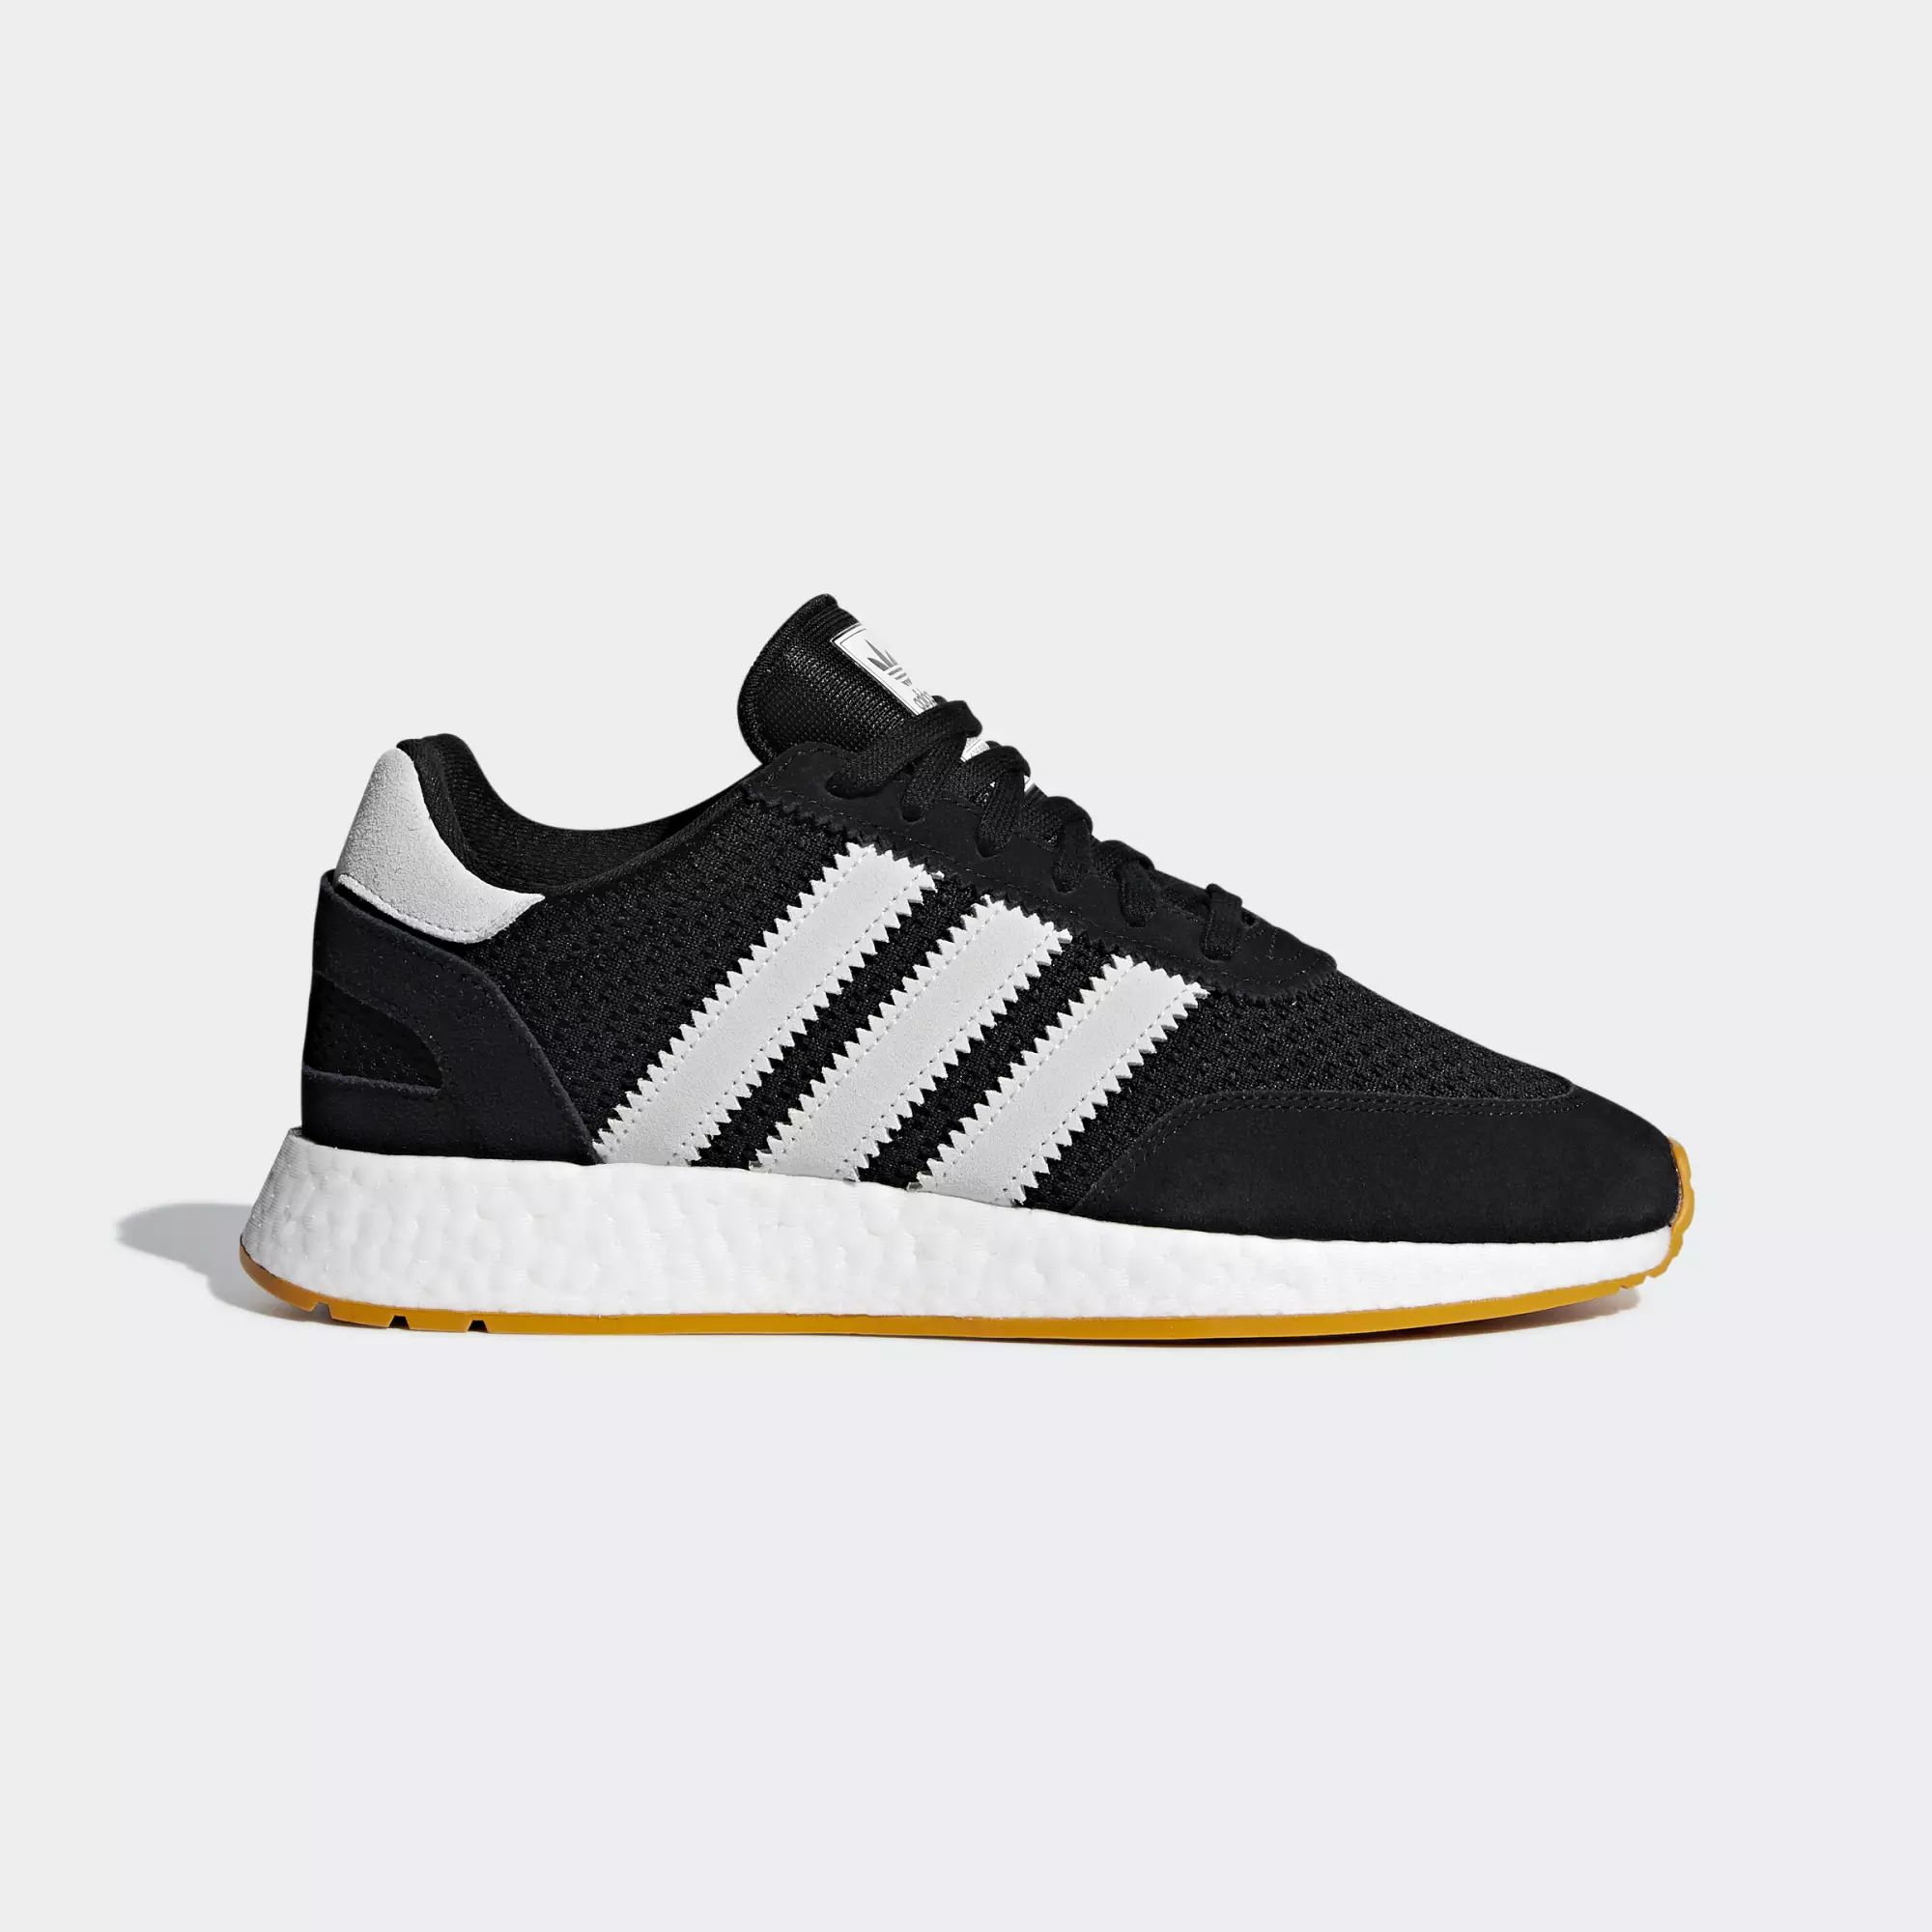 Adidas I-5923 Shoes - Core Black / Crystal White / Tactile Yellow